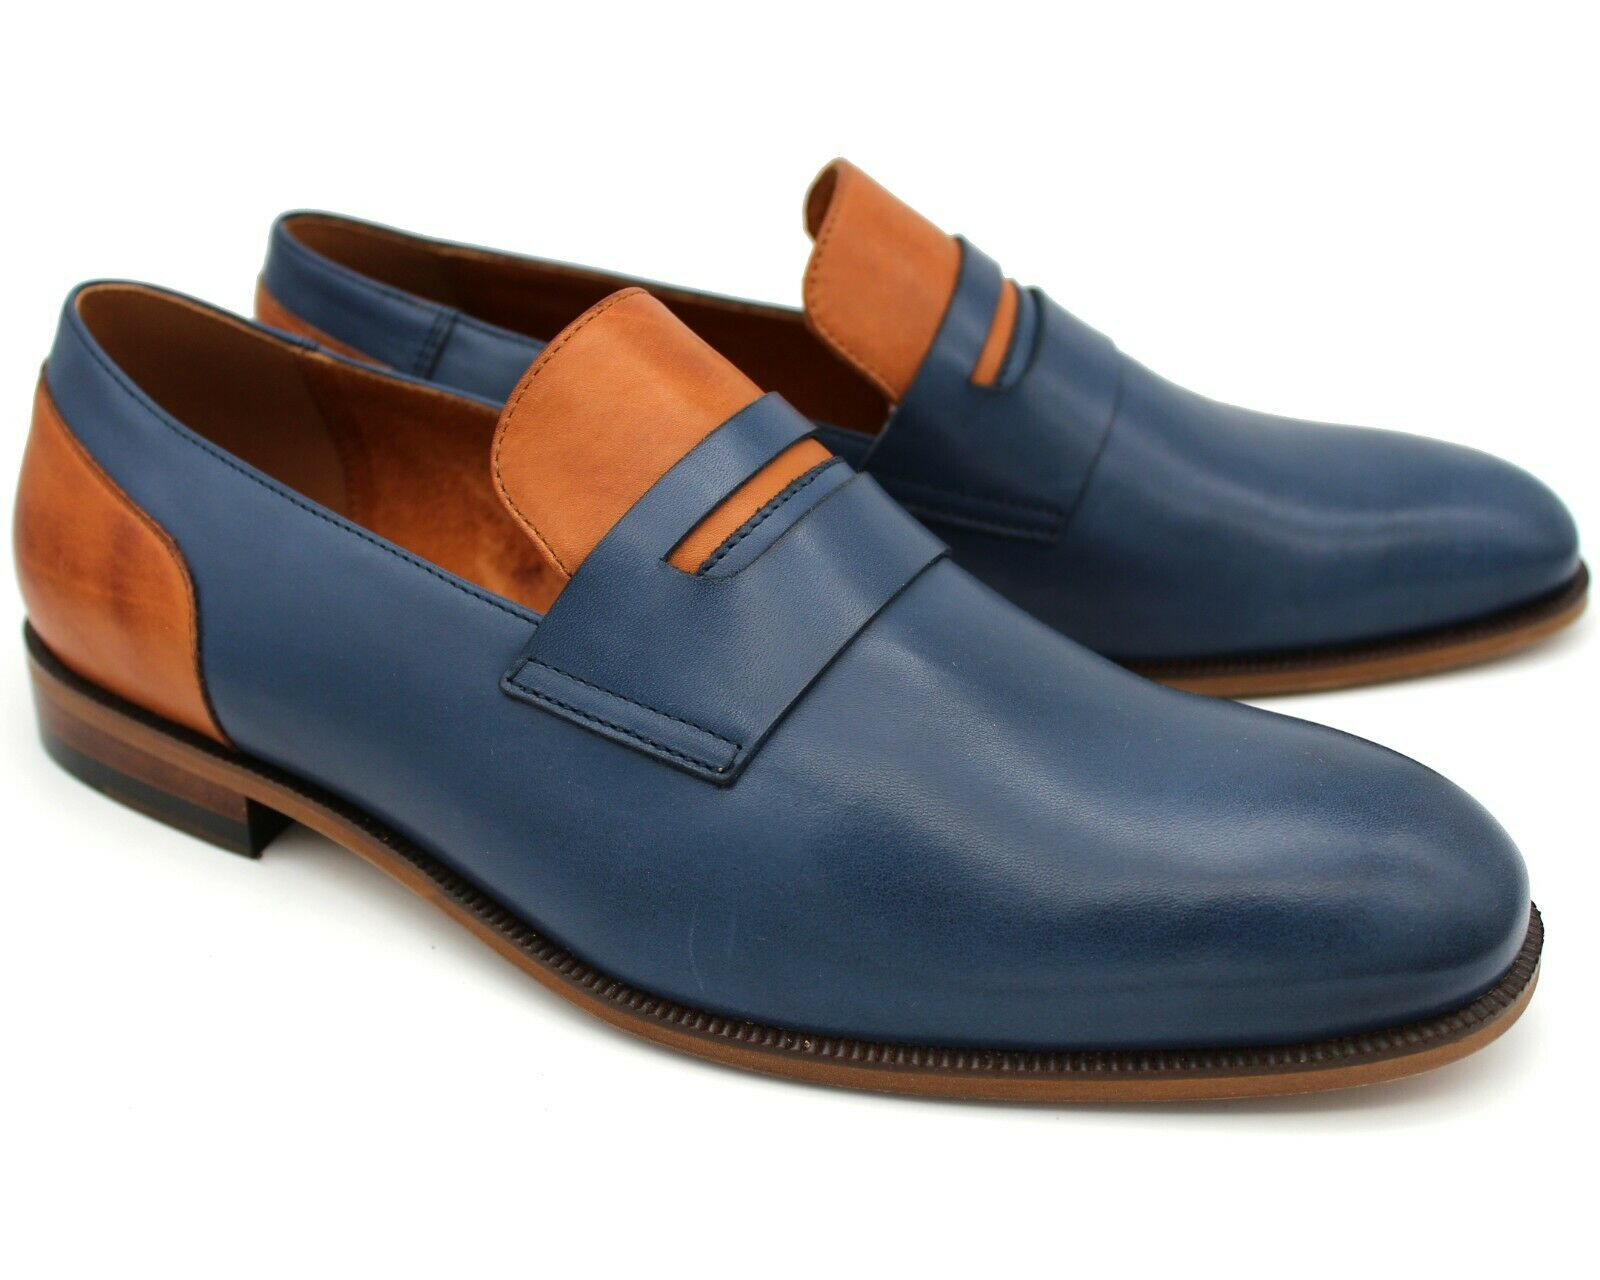 S29 UK 7 NEW MENS NAVY blueE LEATHER LOAFERS SLIP ON ITALIAN SHOES CASUAL EU 41